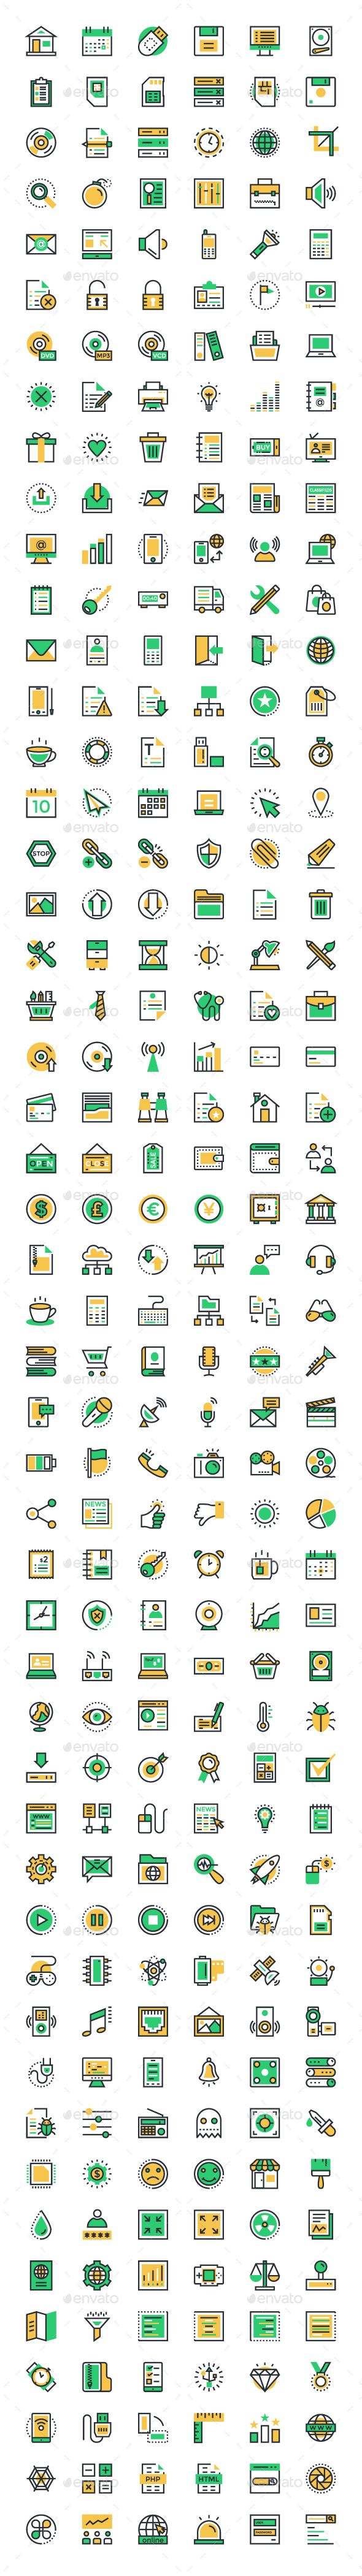 300 User Interface and Web Icons. Download here: http://graphicriver.net/item/300-user-interface-and-web-icons/14840175?ref=ksioks